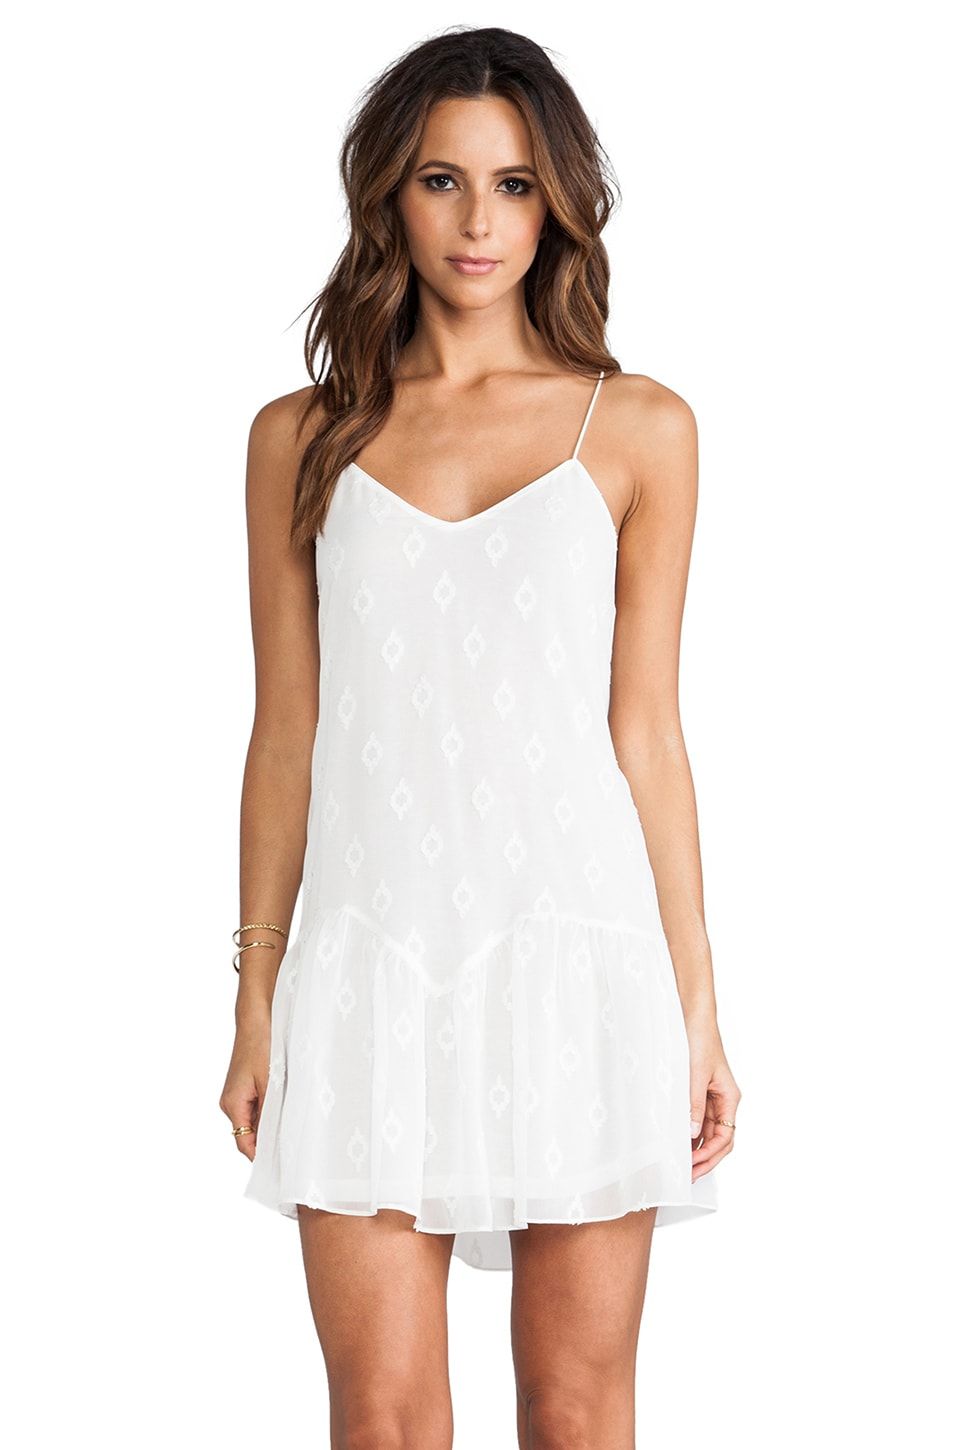 Dolce Vita Inigo Dress in White